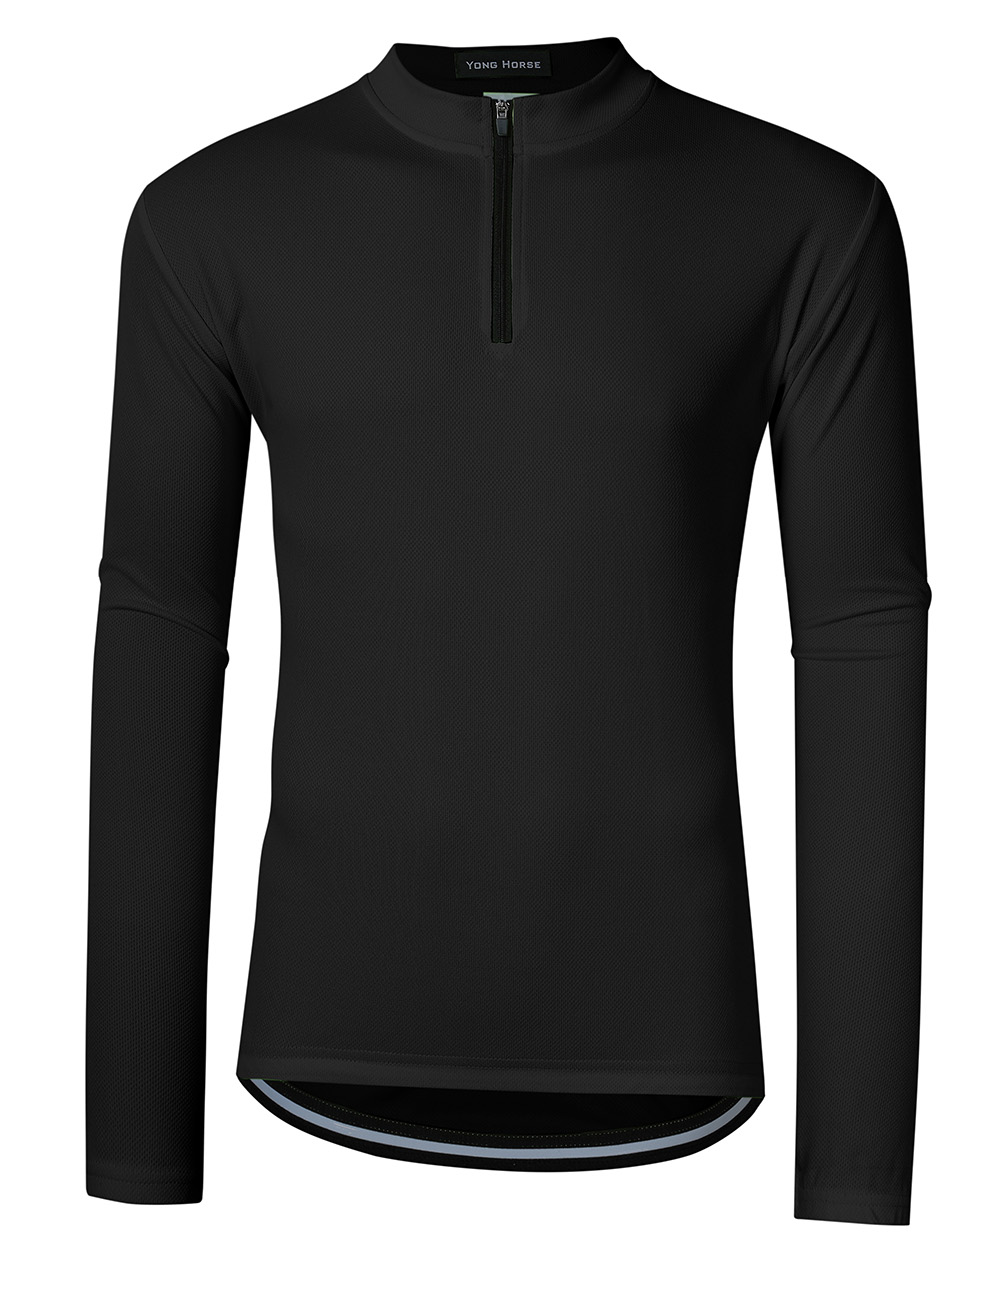 Men's Cycling Jersey Quick Dry Sports Tops